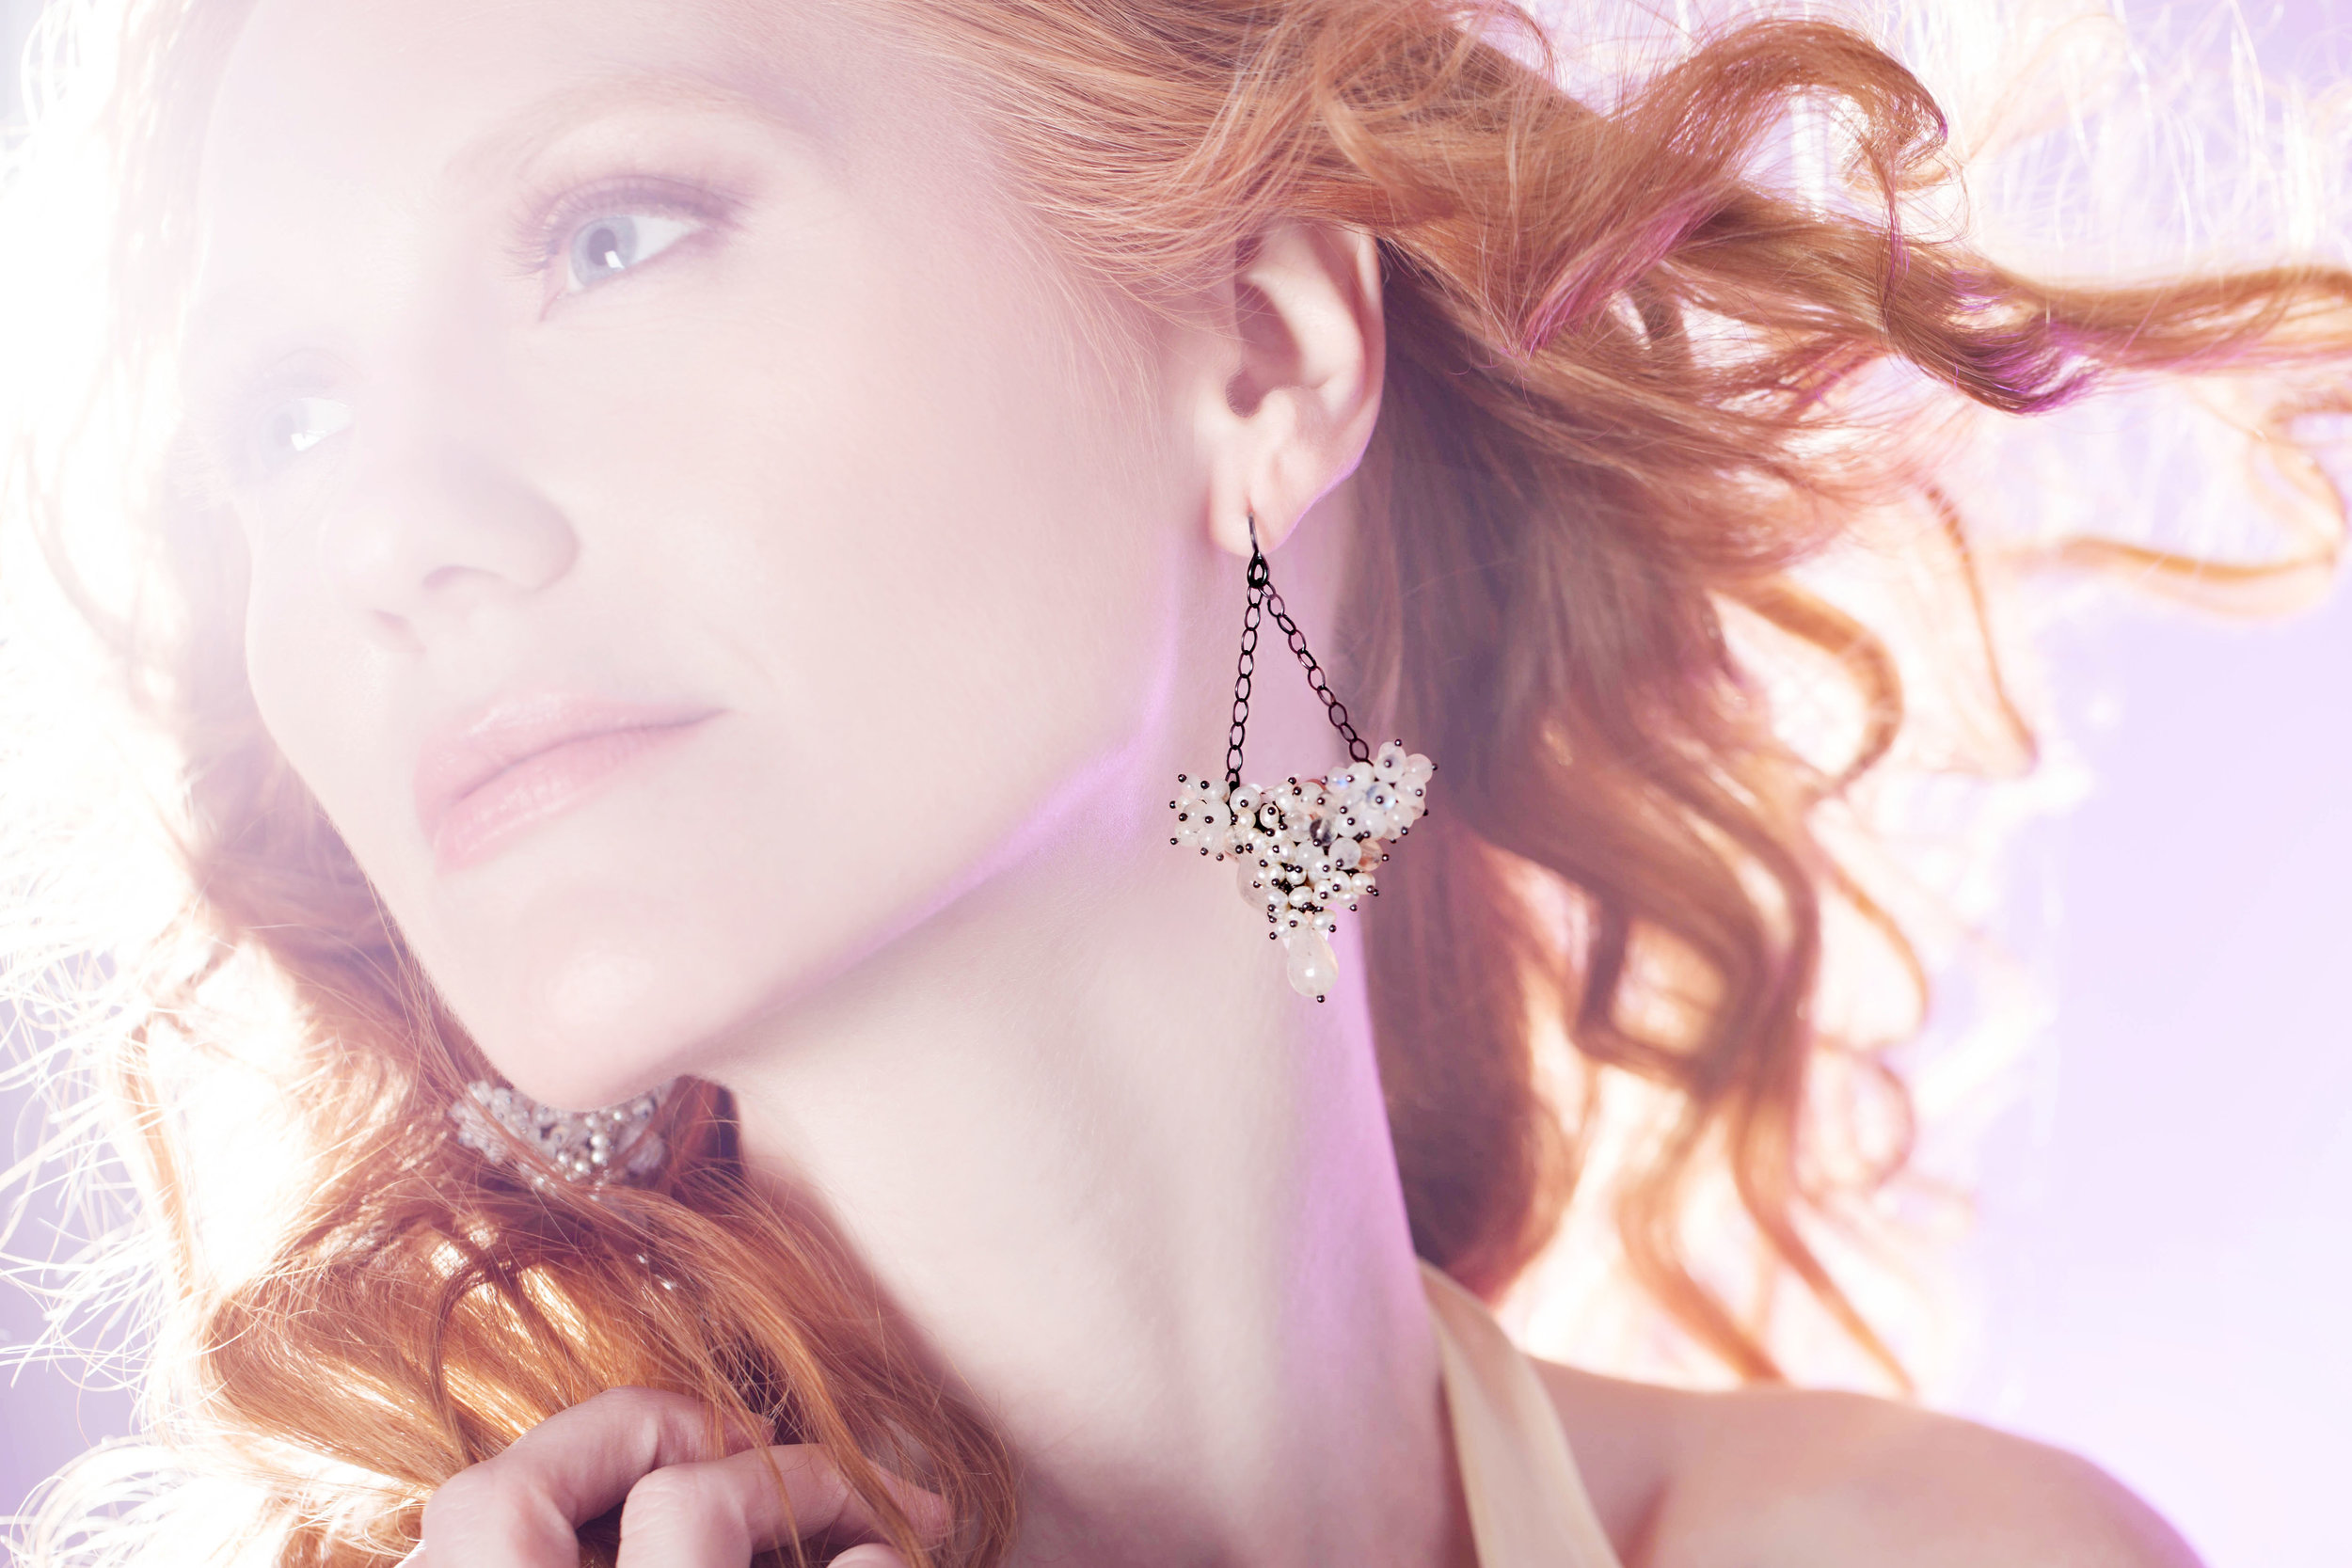 Angels & Gems editorial featuring Michelle Pajak-Reynolds Undina Collection Vanora earrings in rainbow moonstone, pearls, and oxidized recycled sterling silver. Photographer: Julie Stanley/JuleImages Model: Jeanette Thevenin Hair Stylist: Brad Lewis Make-up Artist: Rob Thoma